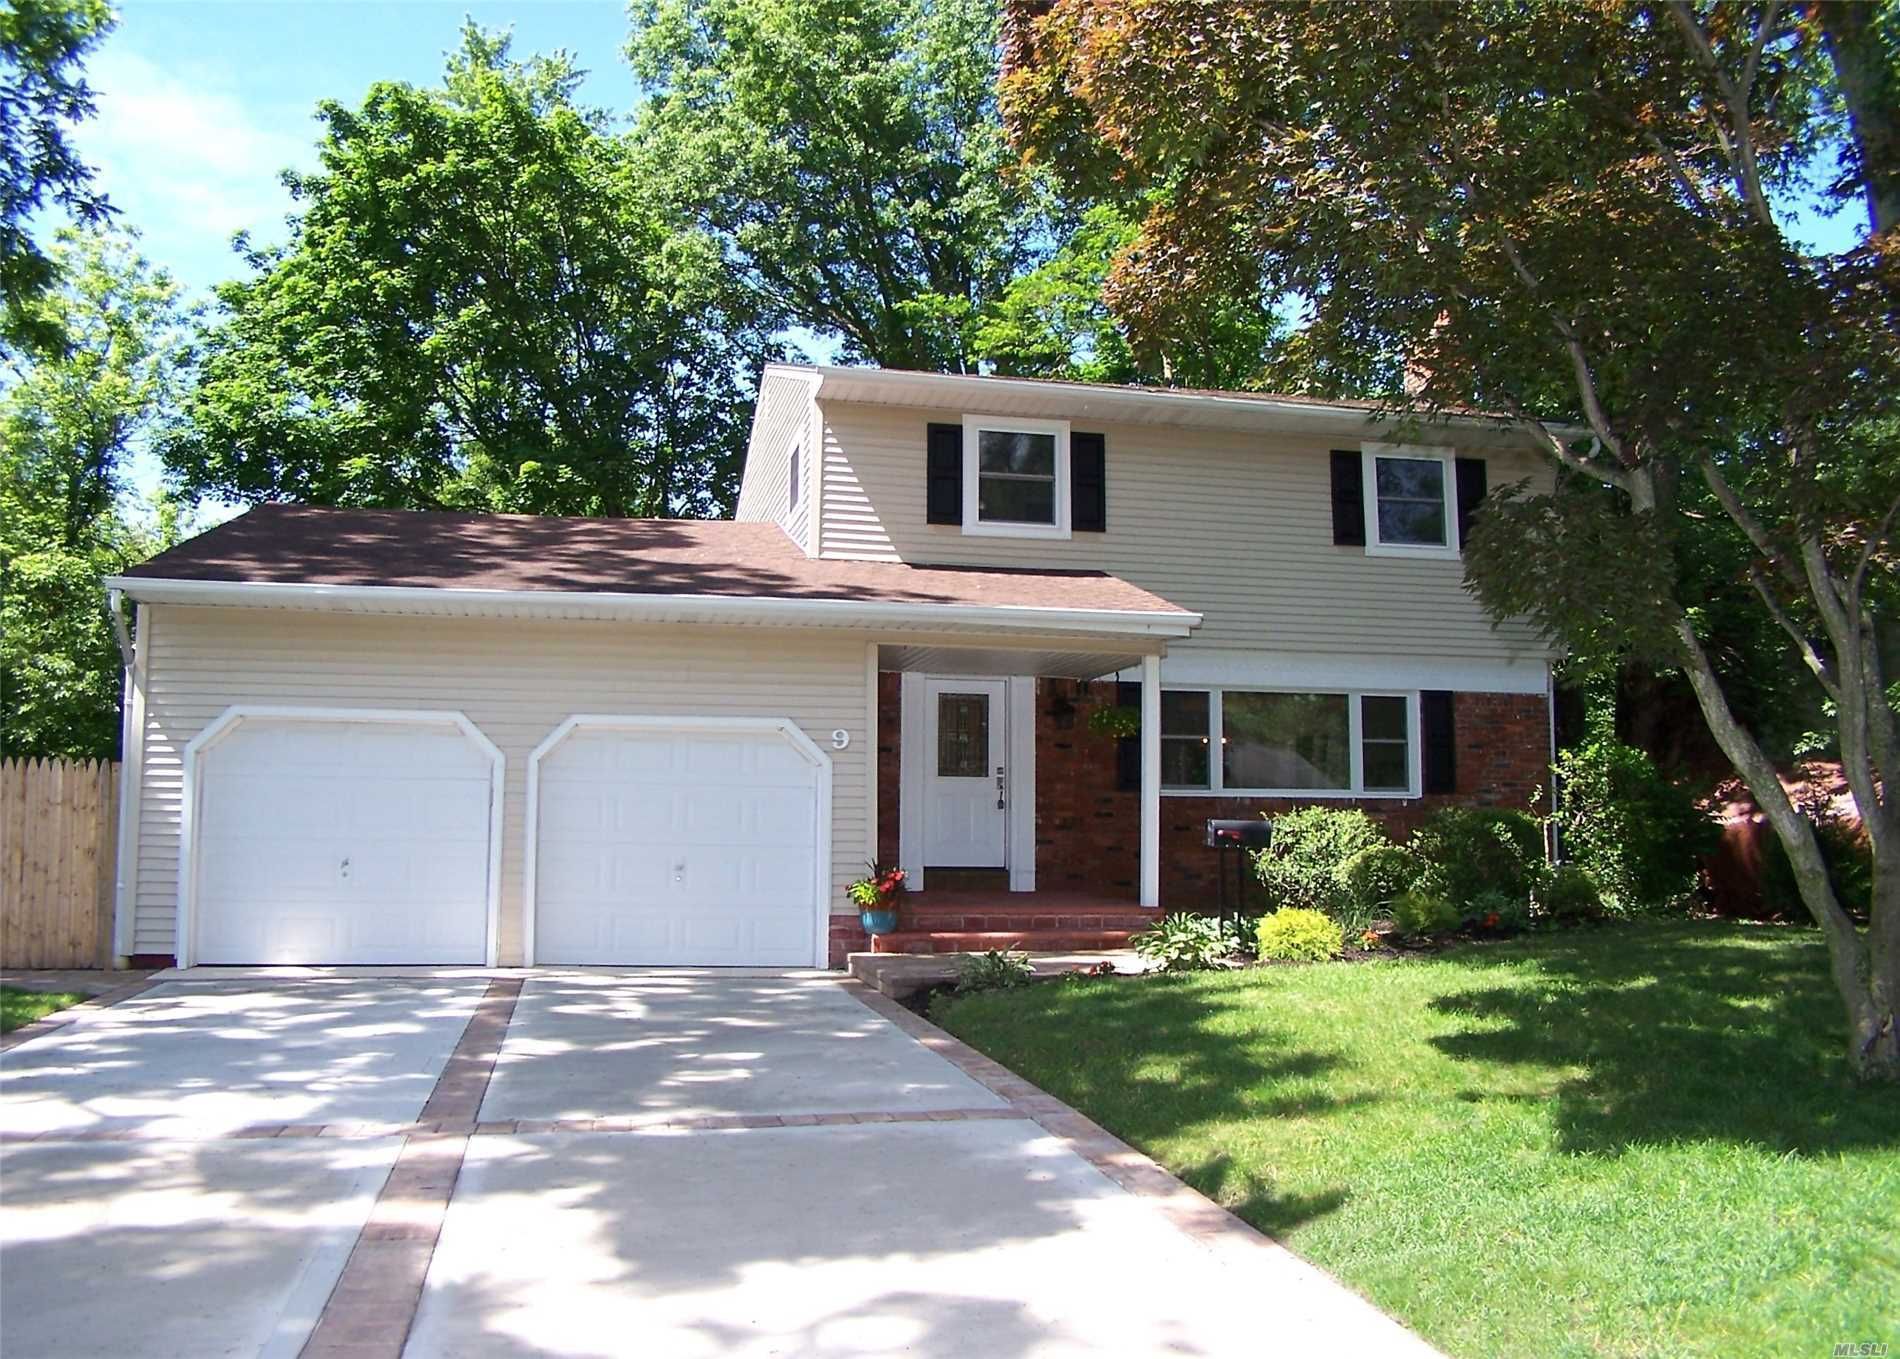 Garage For Sale Long Island 9 Dale Ln Smithtown Ny Mls 3038993 Long Island Homes For